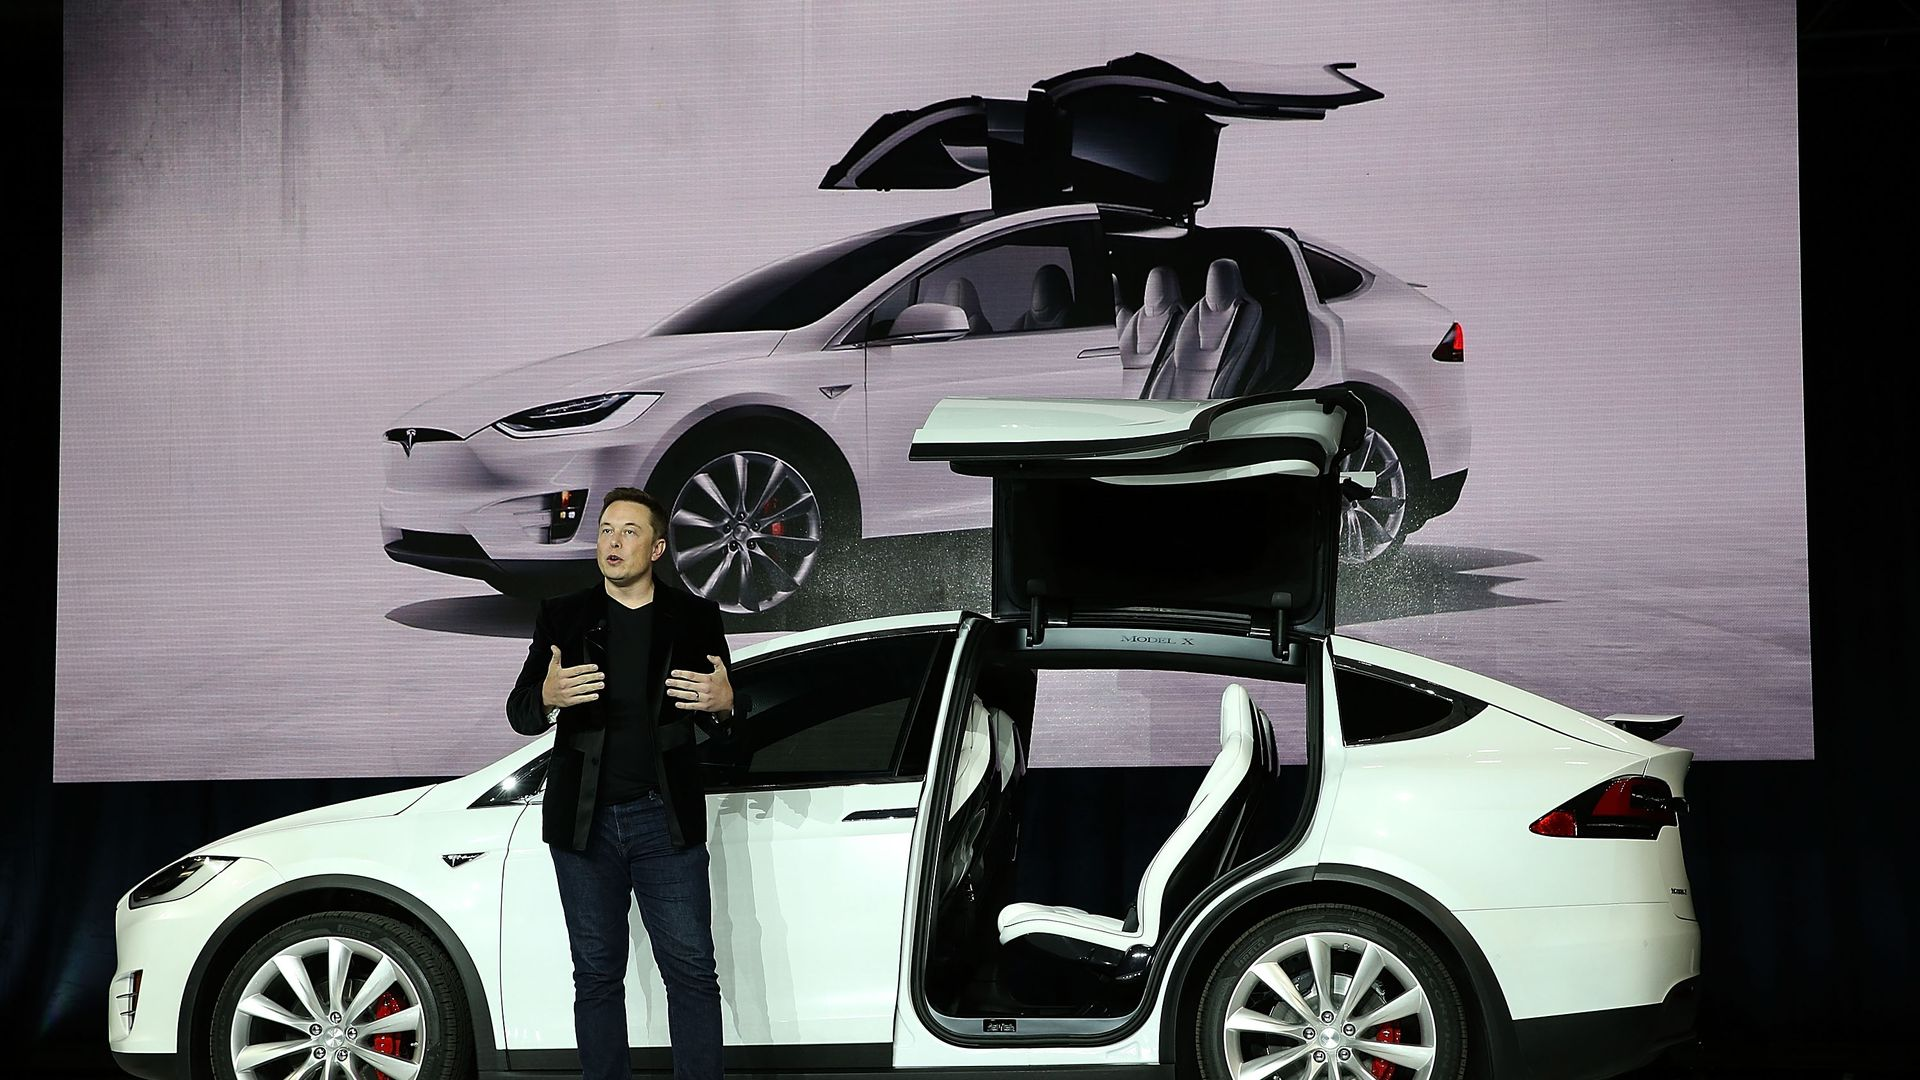 Elon Musk speaking in front of Tesla car